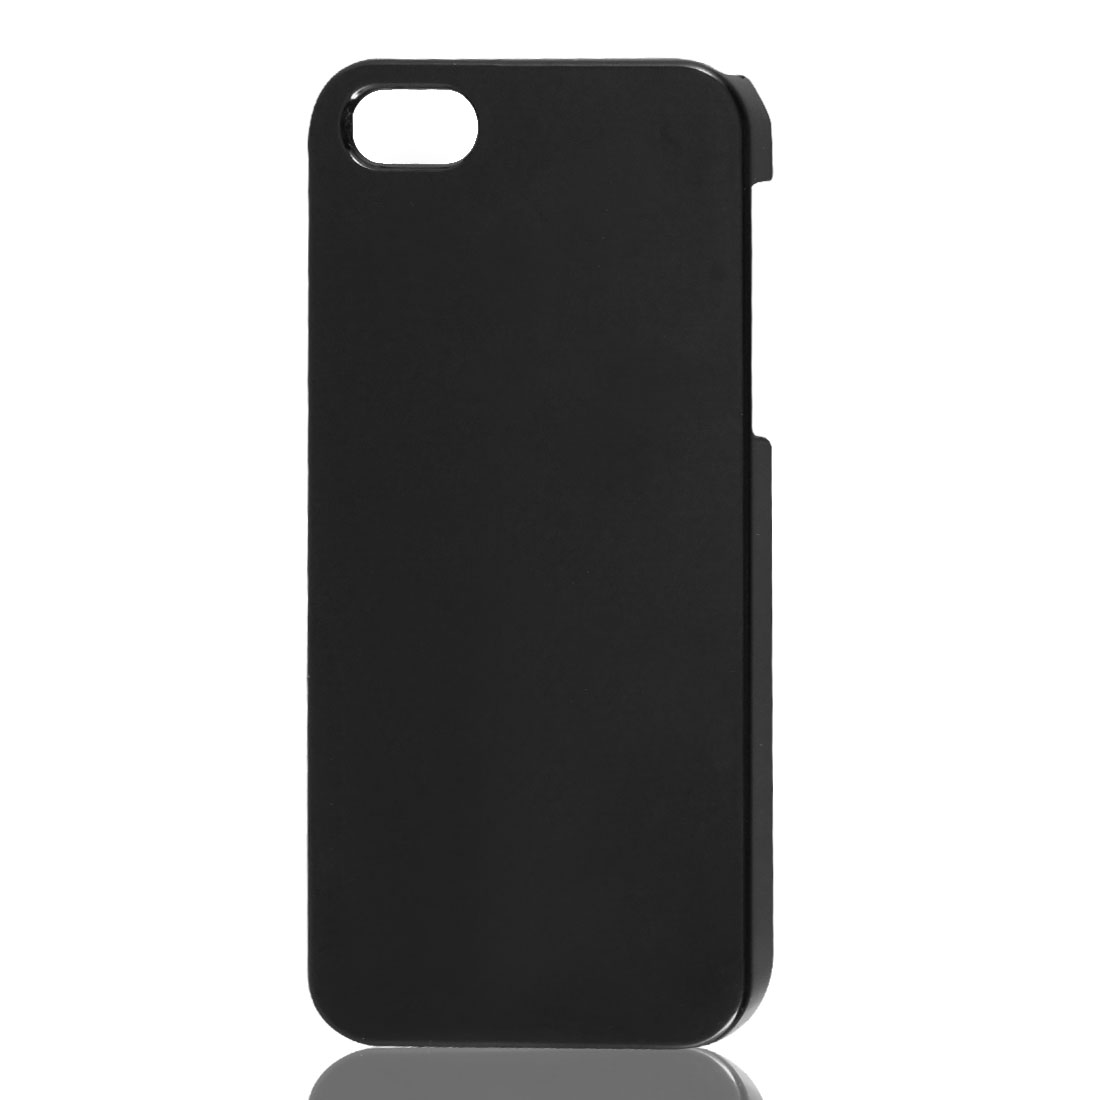 Plastic Black Hard Back Case Cover Protector for Apple iPhone 5 5G